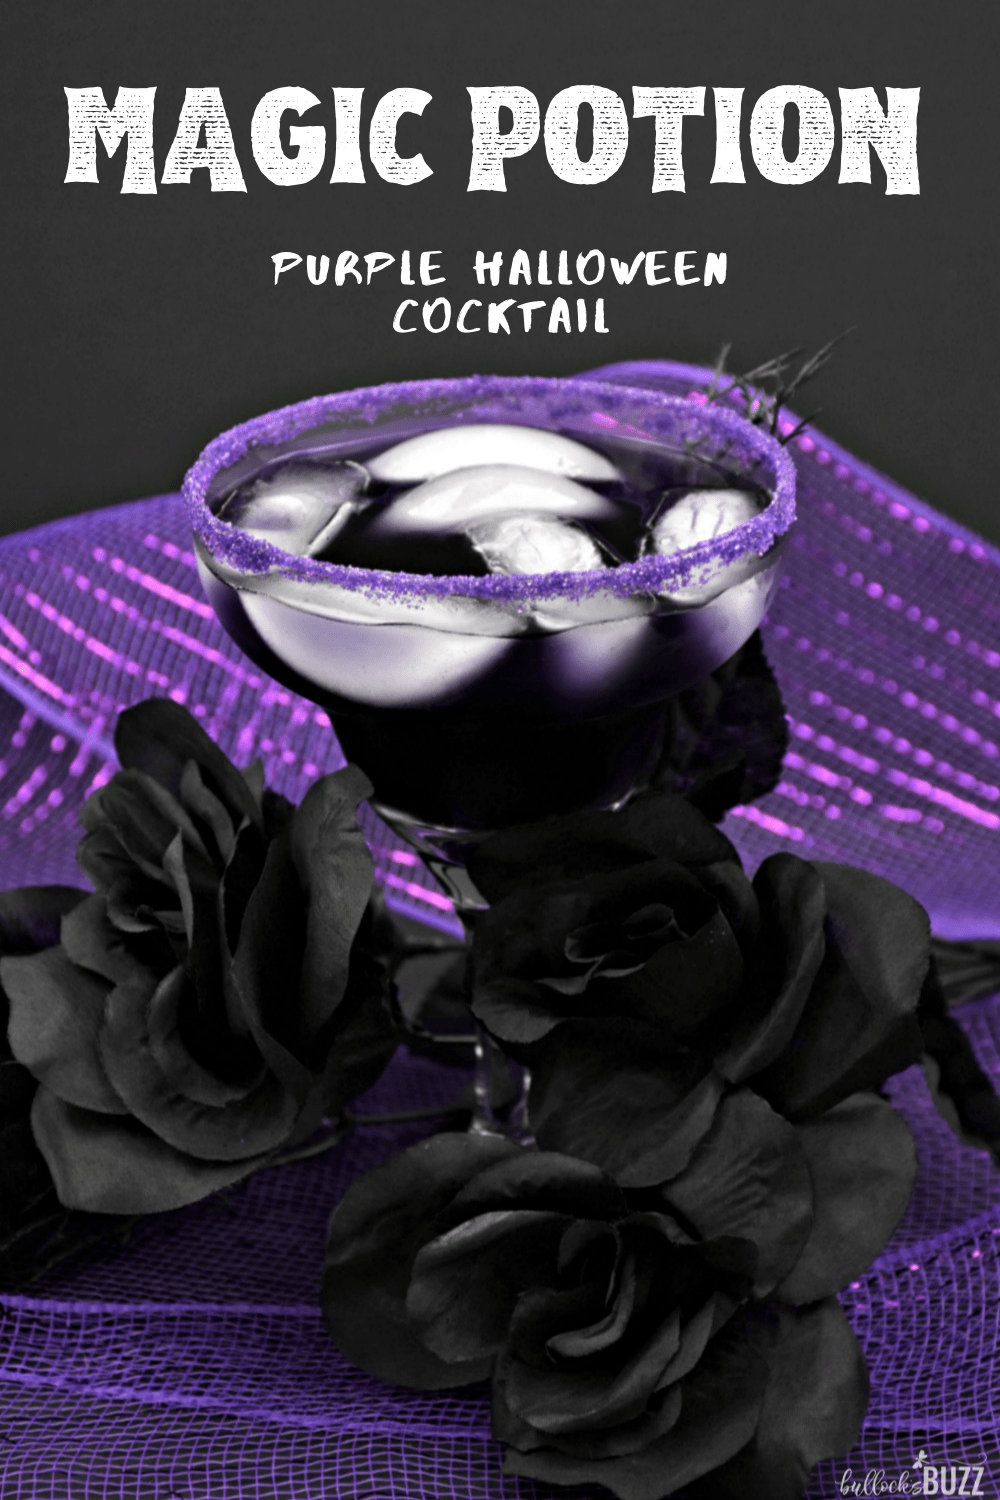 This purple Halloween cocktail has the most hauntingly beautiful deep purple hue, and a taste that's to die for! Made with vodka, blue curacao, sweet and sour mix, grenadine, and crangrape juice, the Magic Potion Halloween Cocktail is so yummy it's scary!